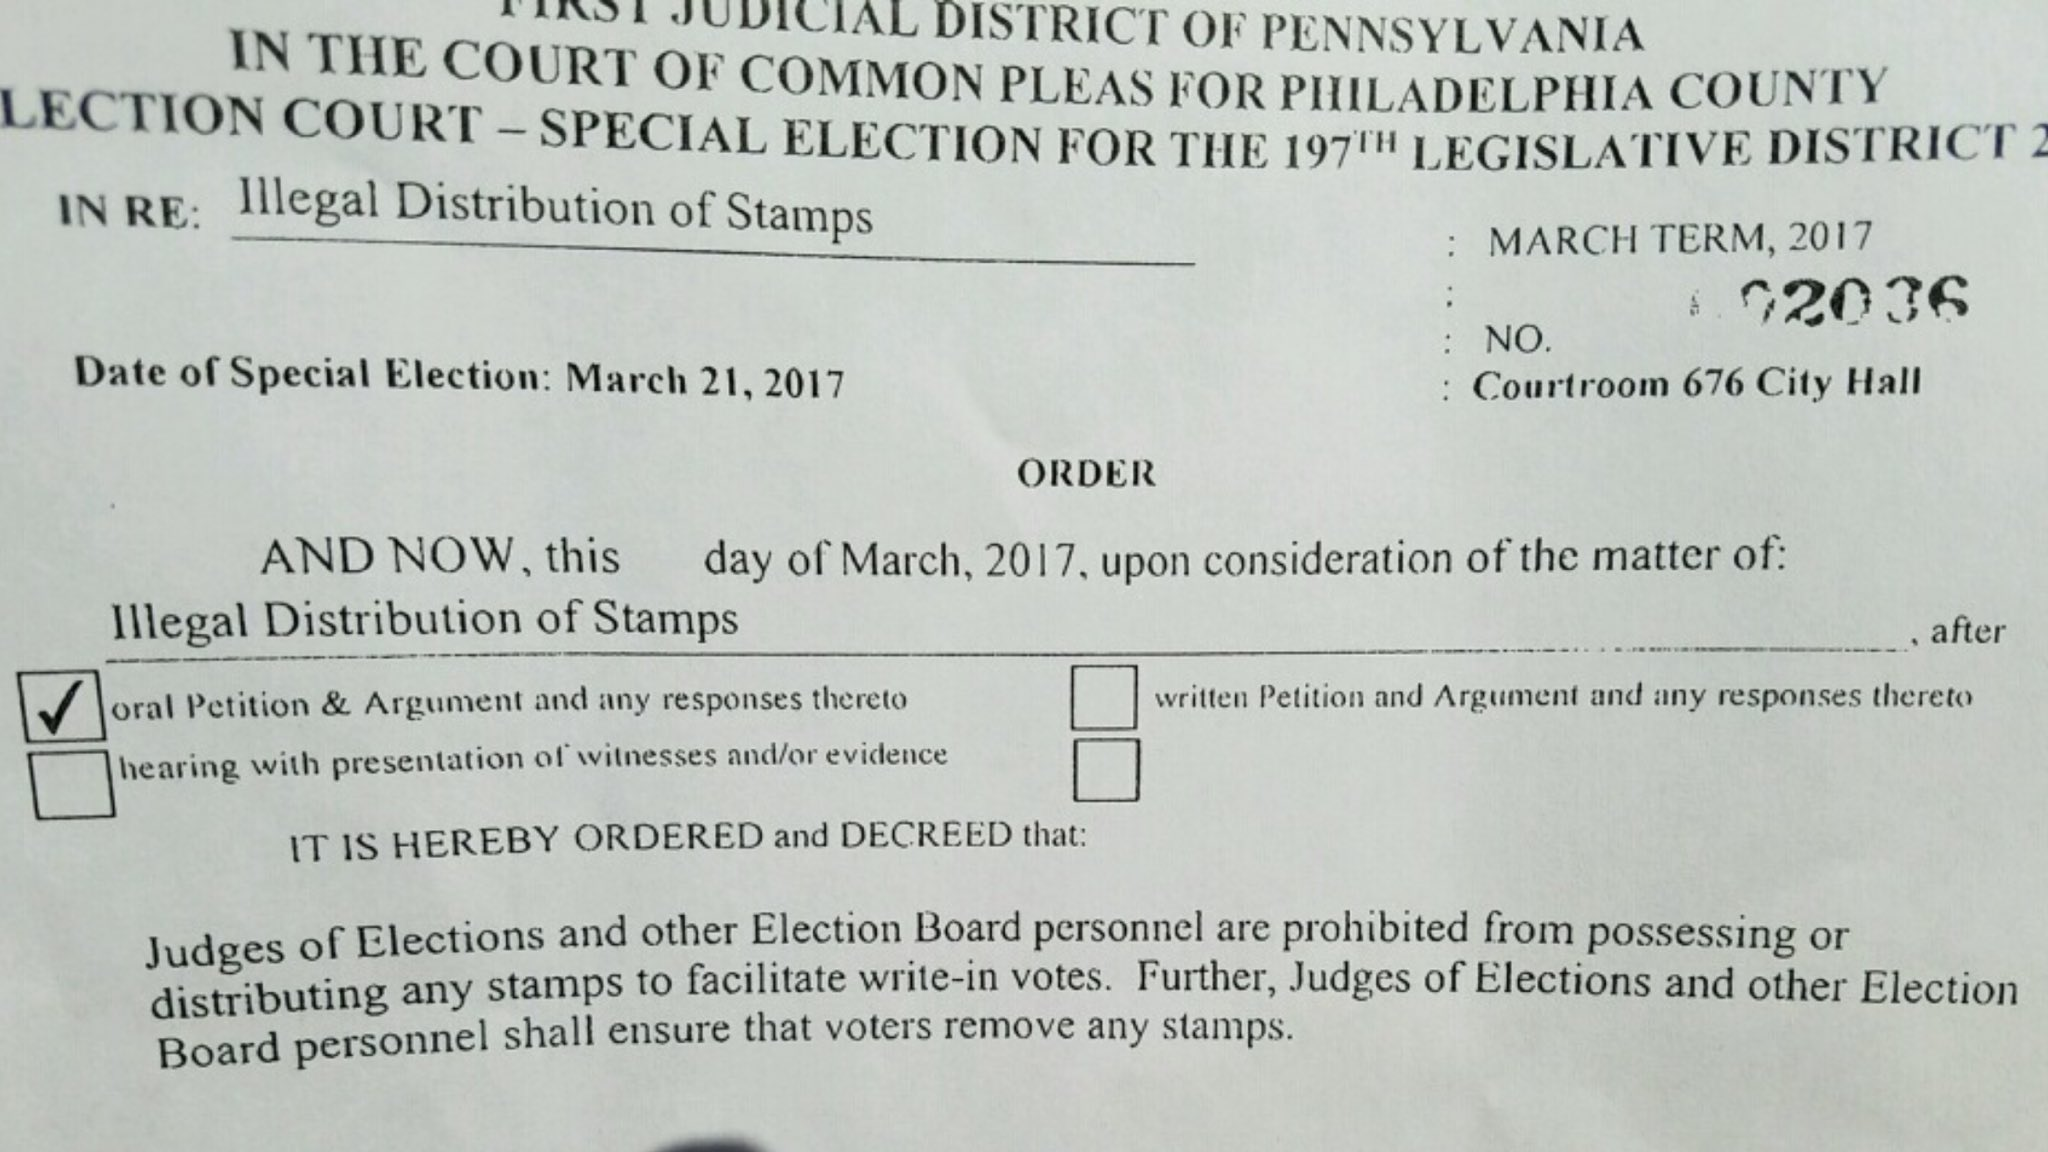 Judge is ordering election board personnel to ensure voters take the write-in stamps with them when they leave #197th @TheSpiritNews https://t.co/nTTXp6lxFm